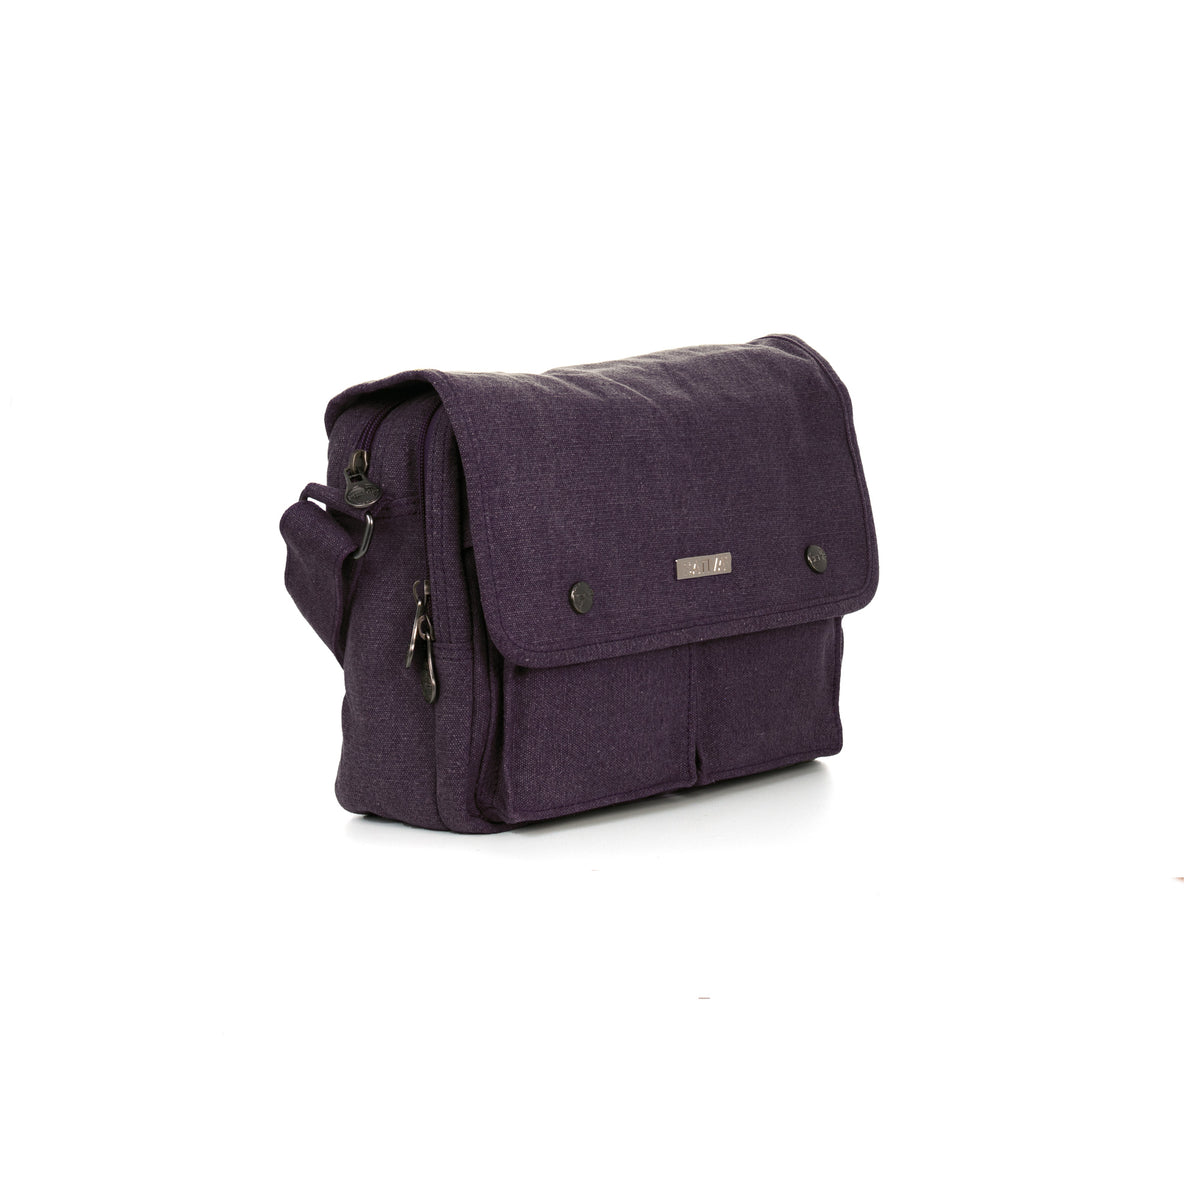 Harlowe - Hemp & Organic Cotton Shoulder Bag - by Sativa